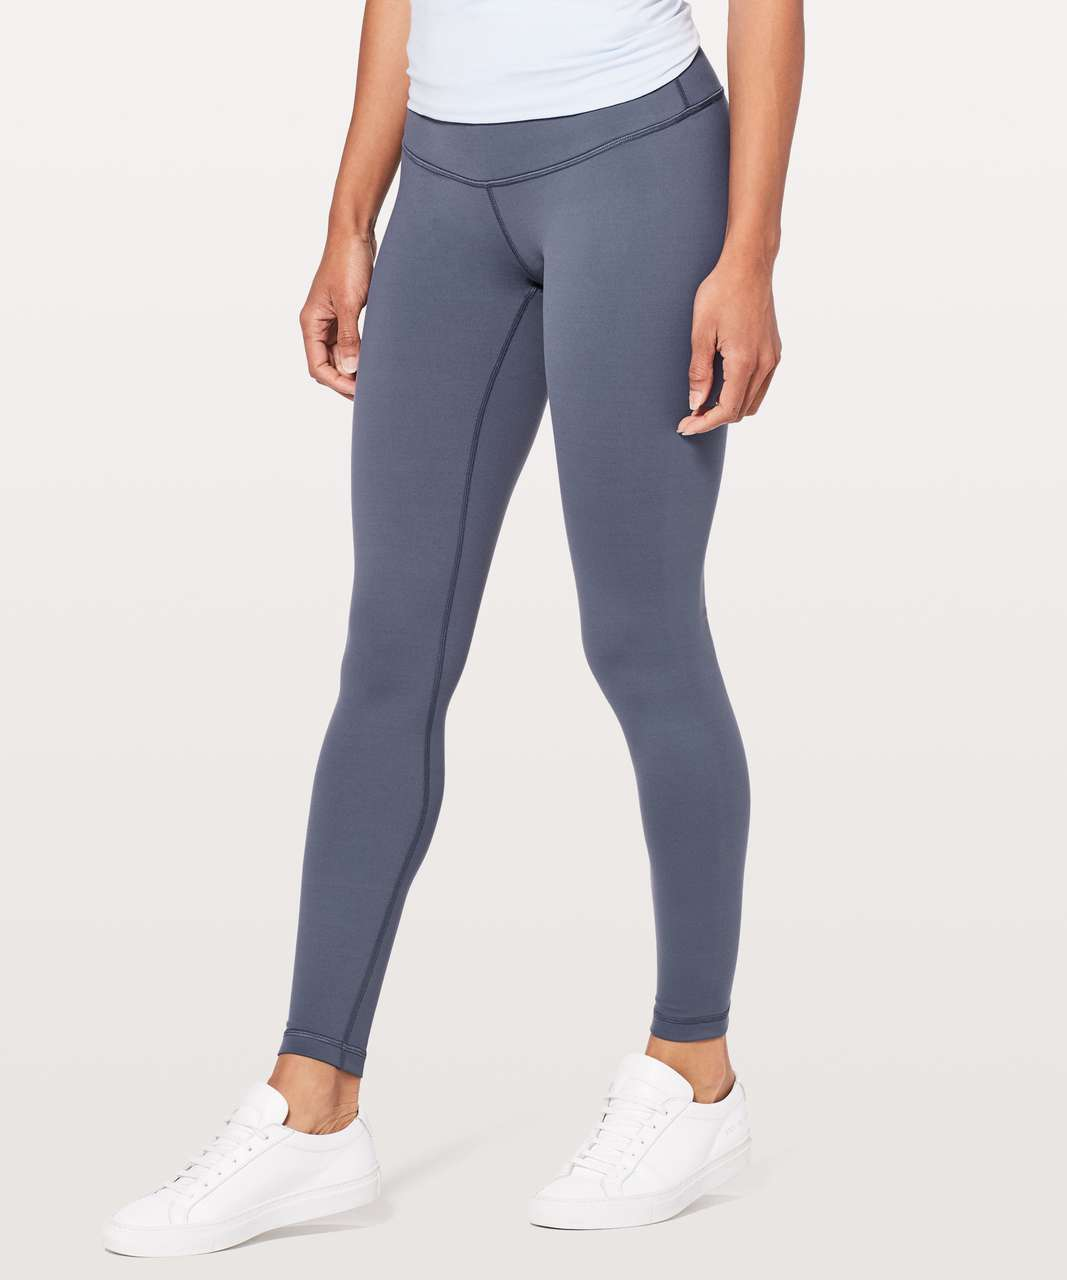 bb3bf95e68ac8 Lululemon Wunder Under Low-Rise Tight *Full-On Luon 28